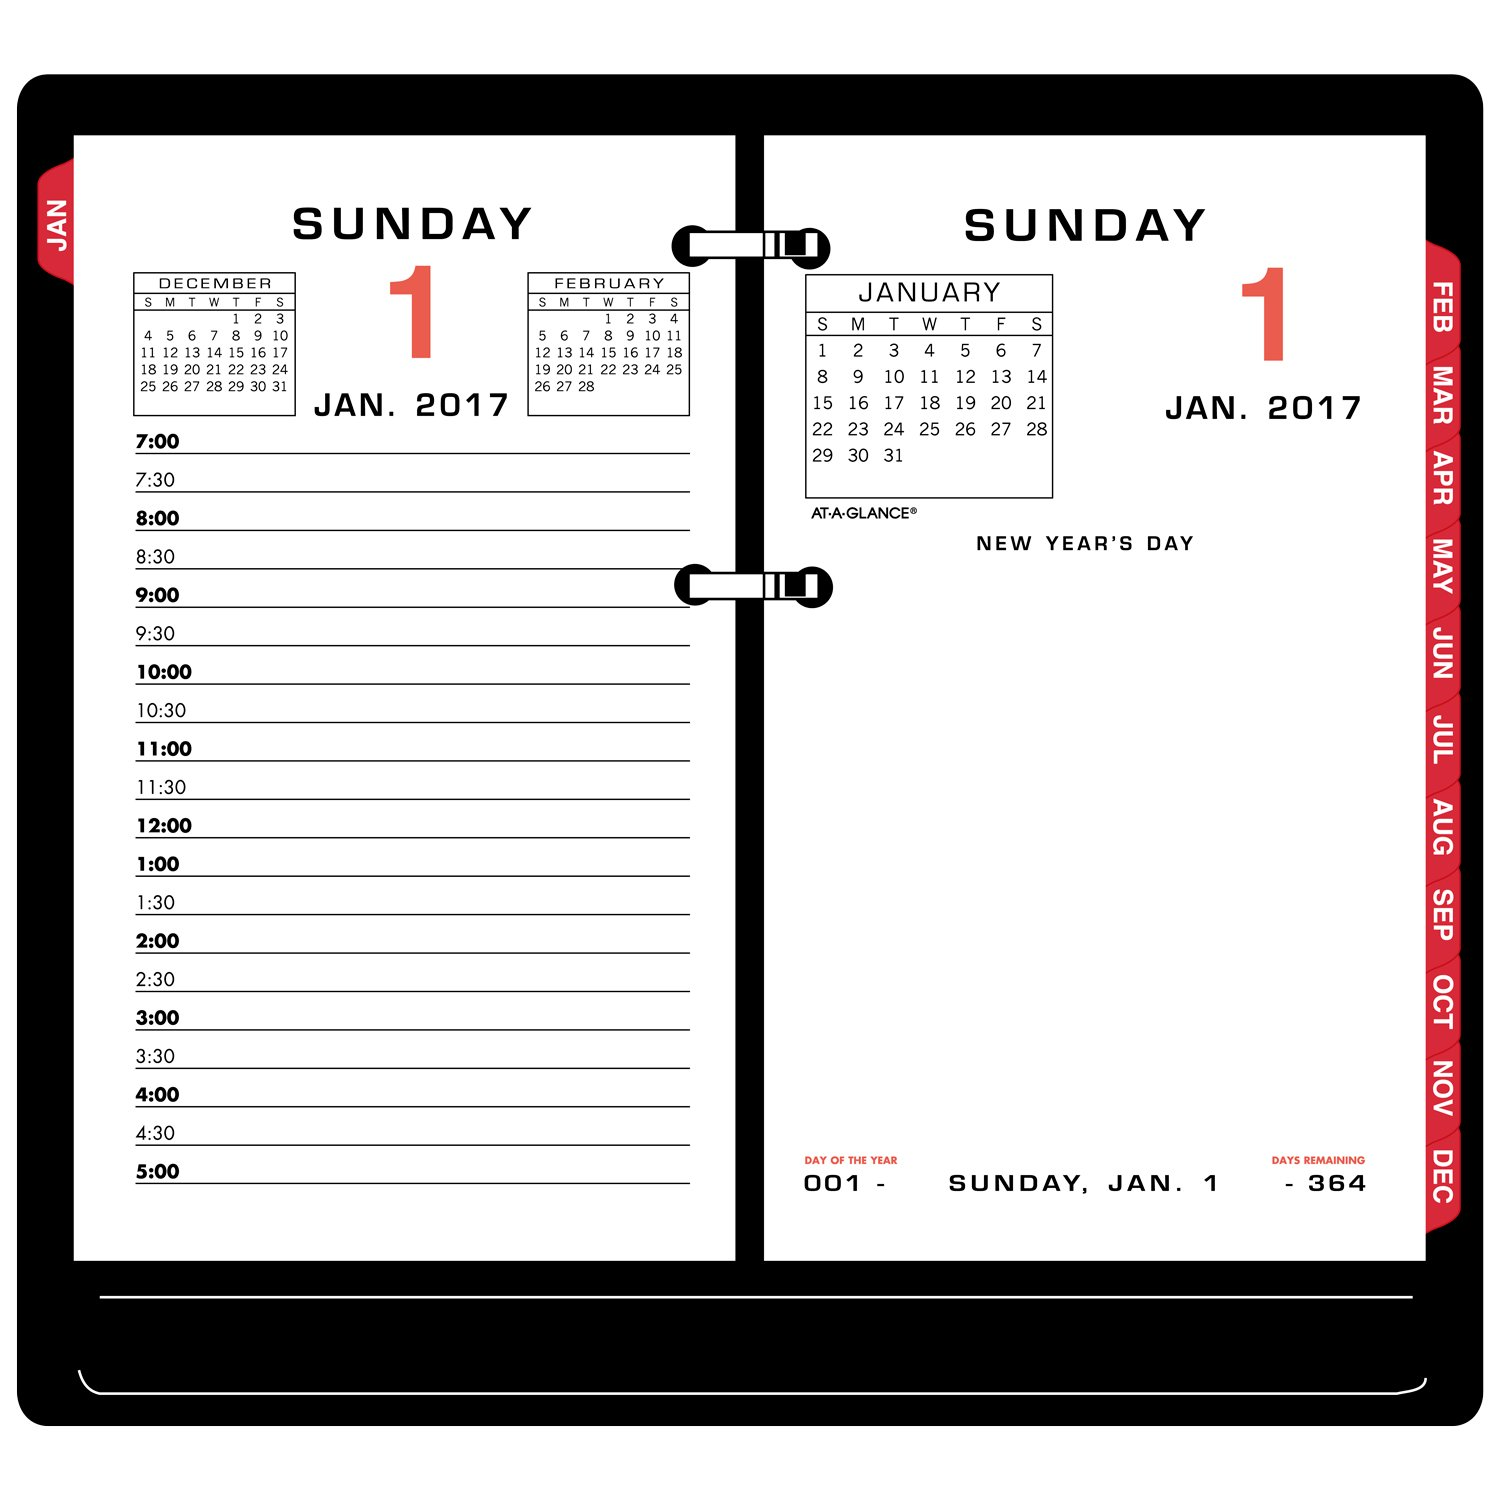 AT-A-GLANCE Daily Calendar 2017 Refill, 3-1/2 x 6'', Desk Size (E017-50) by AT-A-GLANCE